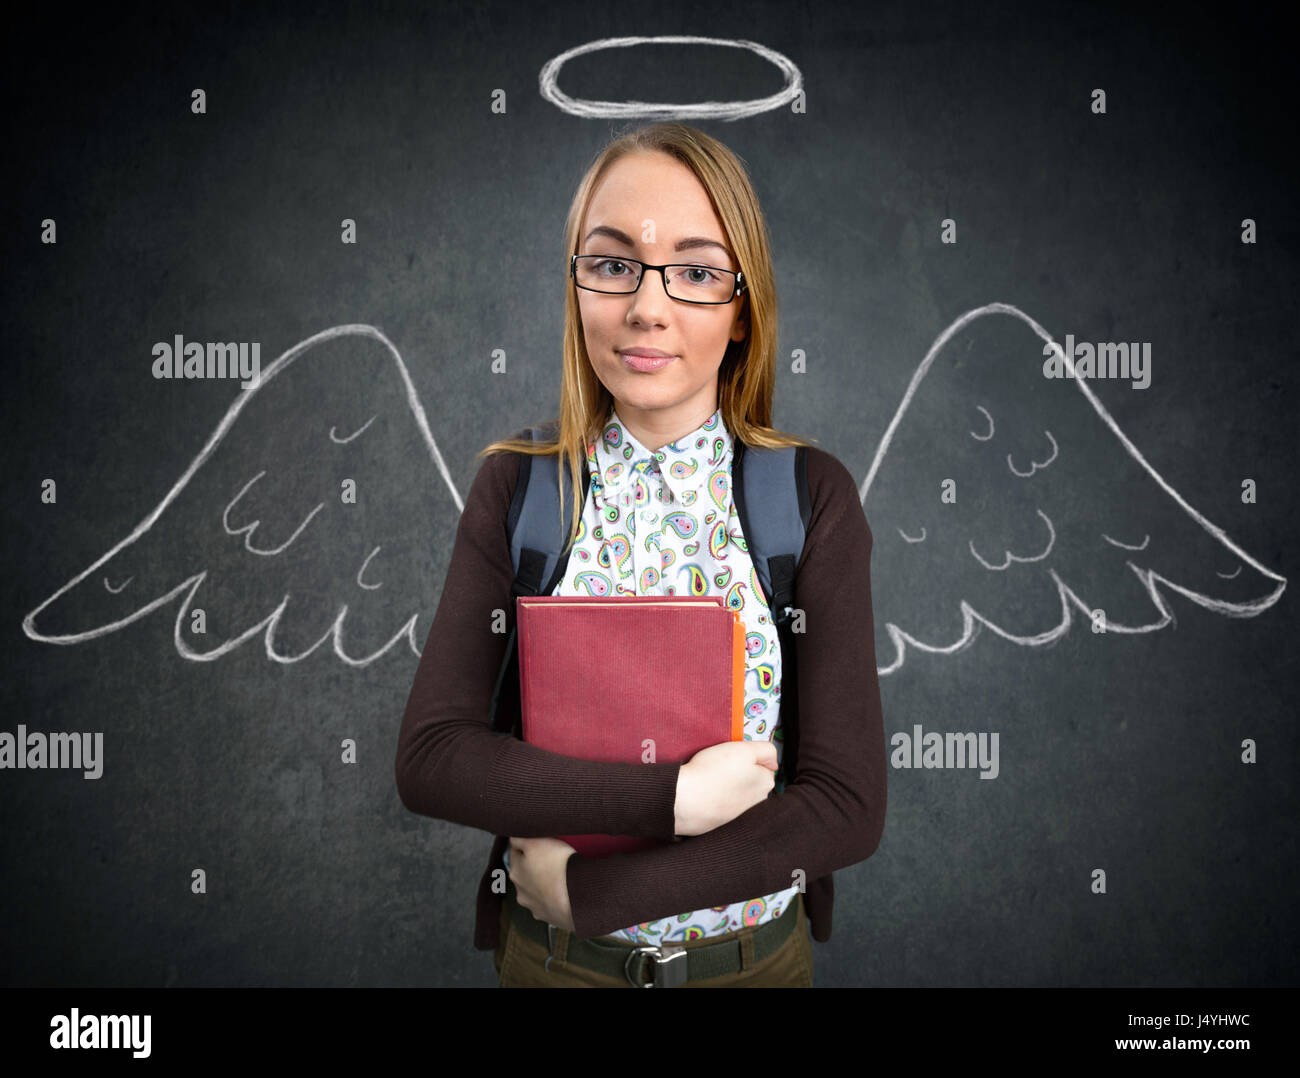 schoolgirl with funny angel wings and nimbus - Stock Image